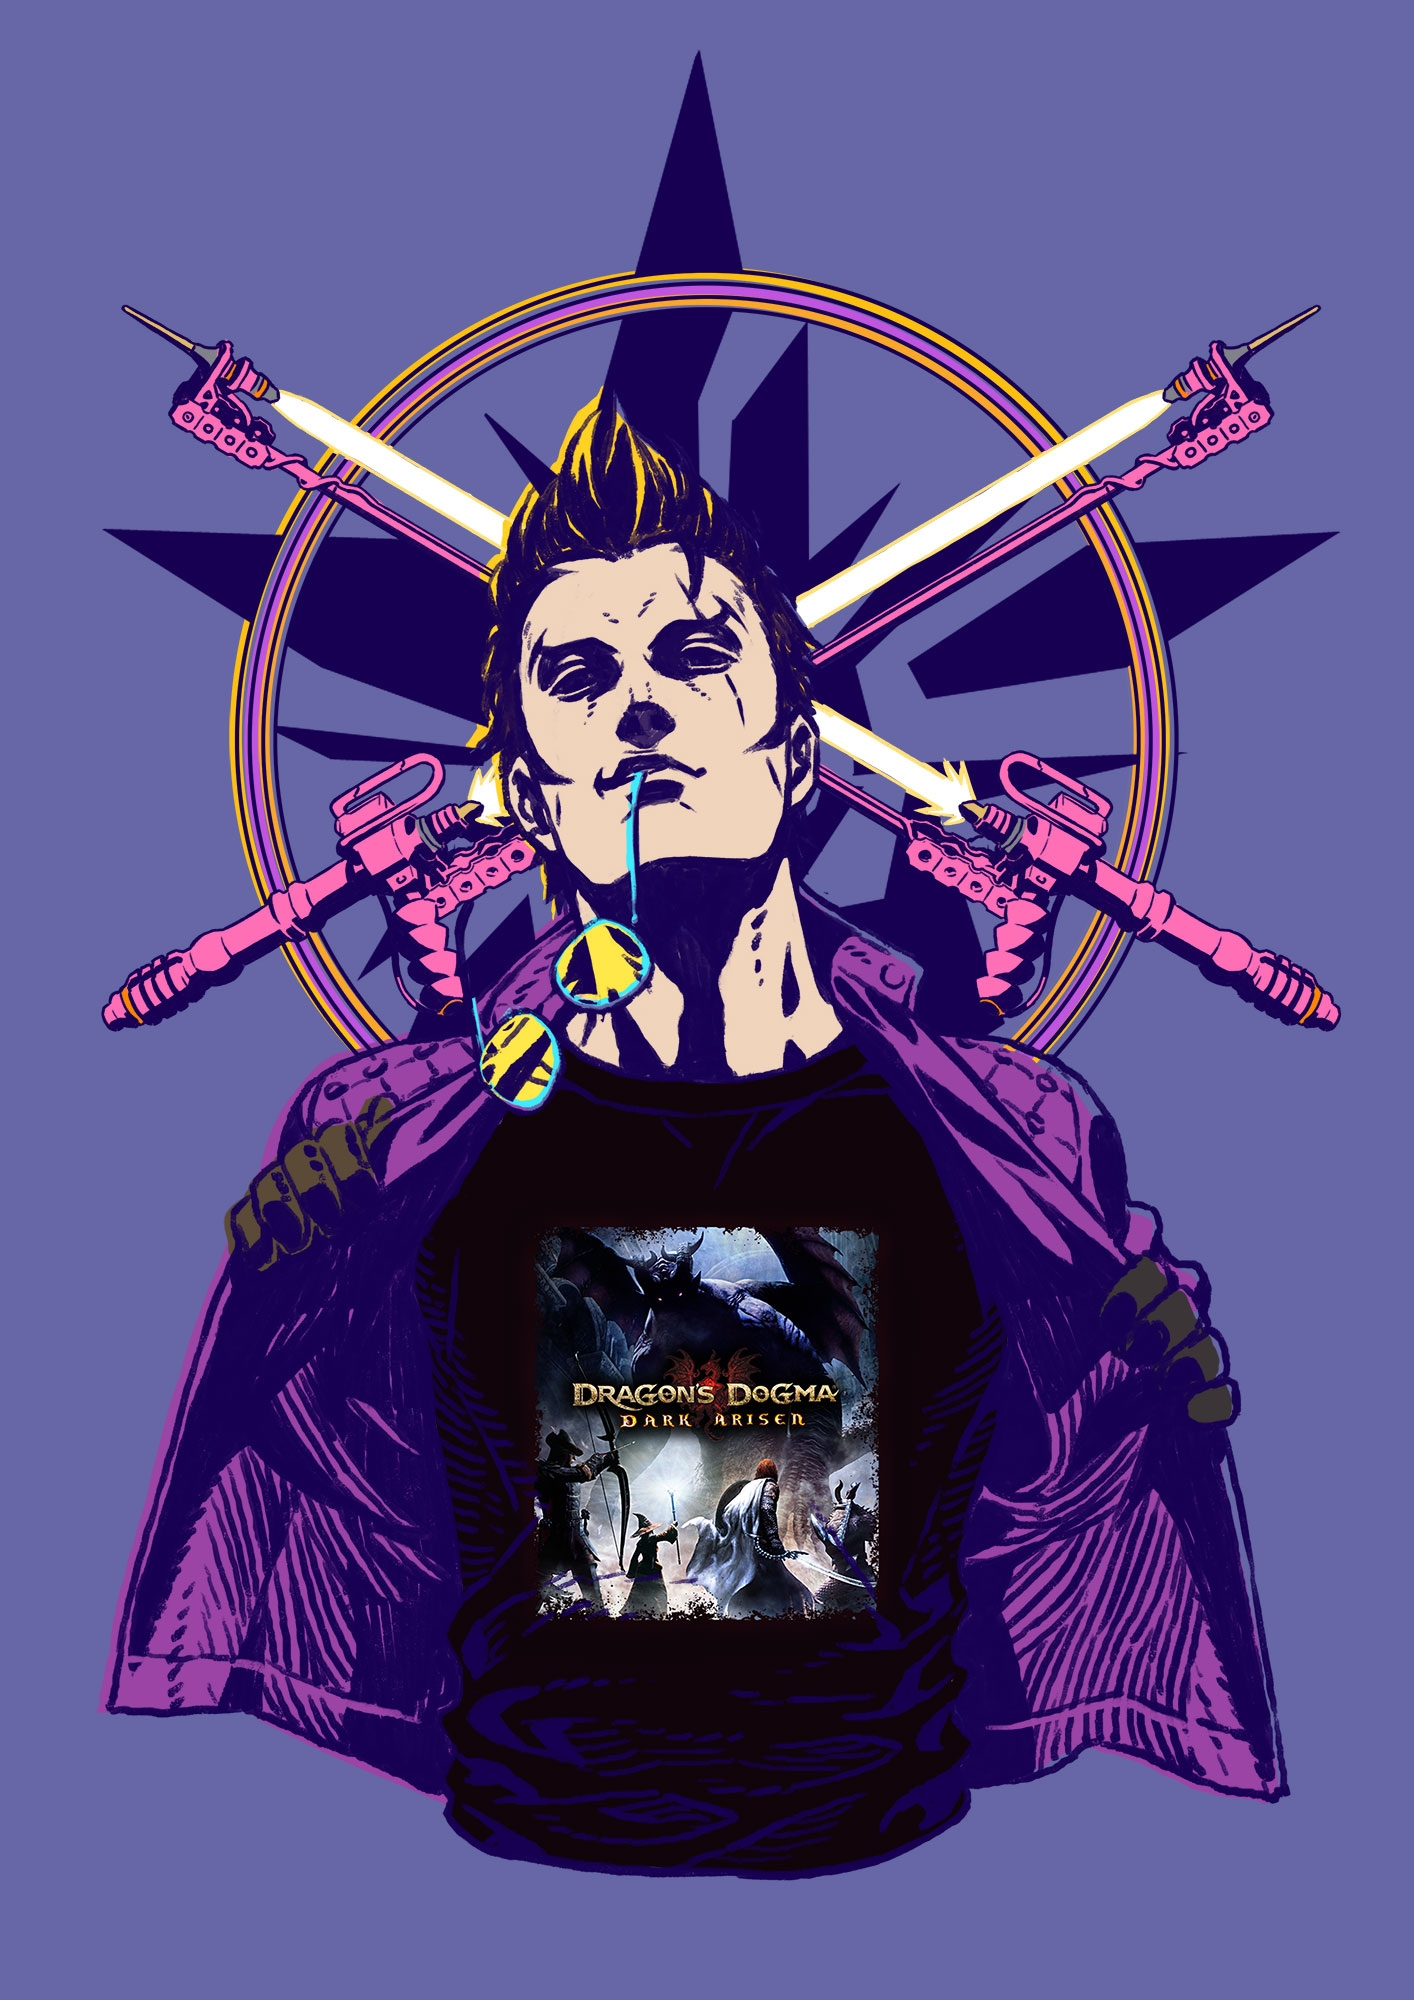 Dragon S Dogma Dark Arisen X Travis Strikes Again No More Heroes